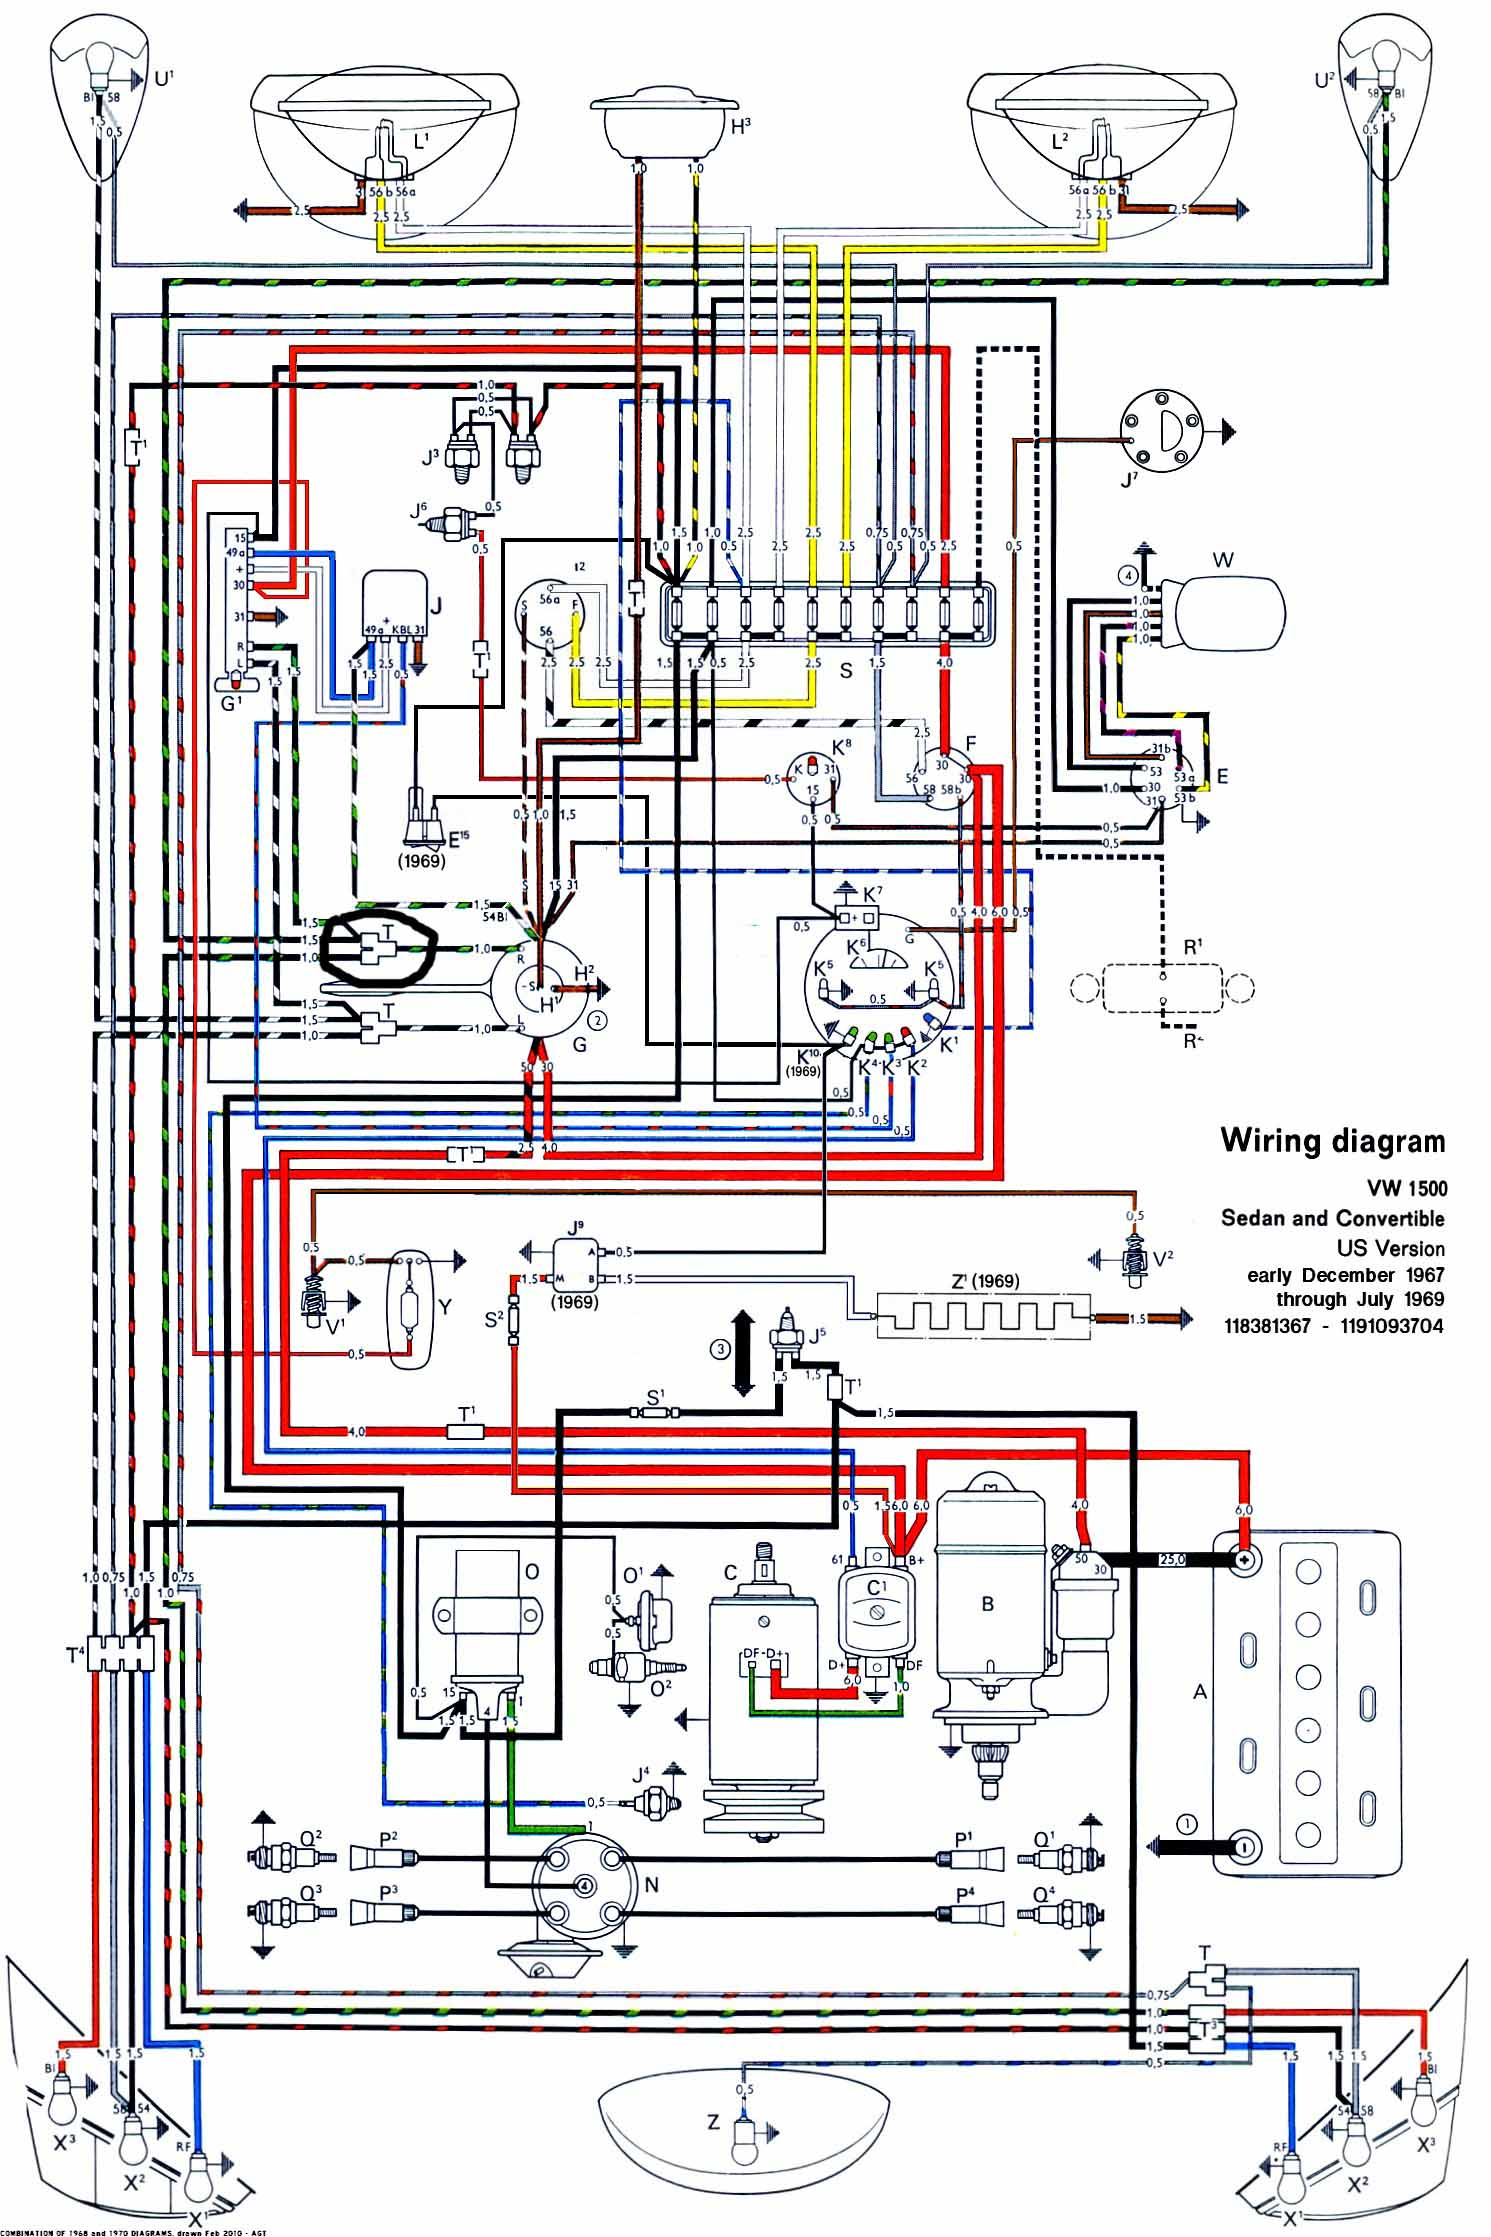 1971 Vw Wiring Diagram Will Be A Thing T4 Pdf For Beetle The Transporter